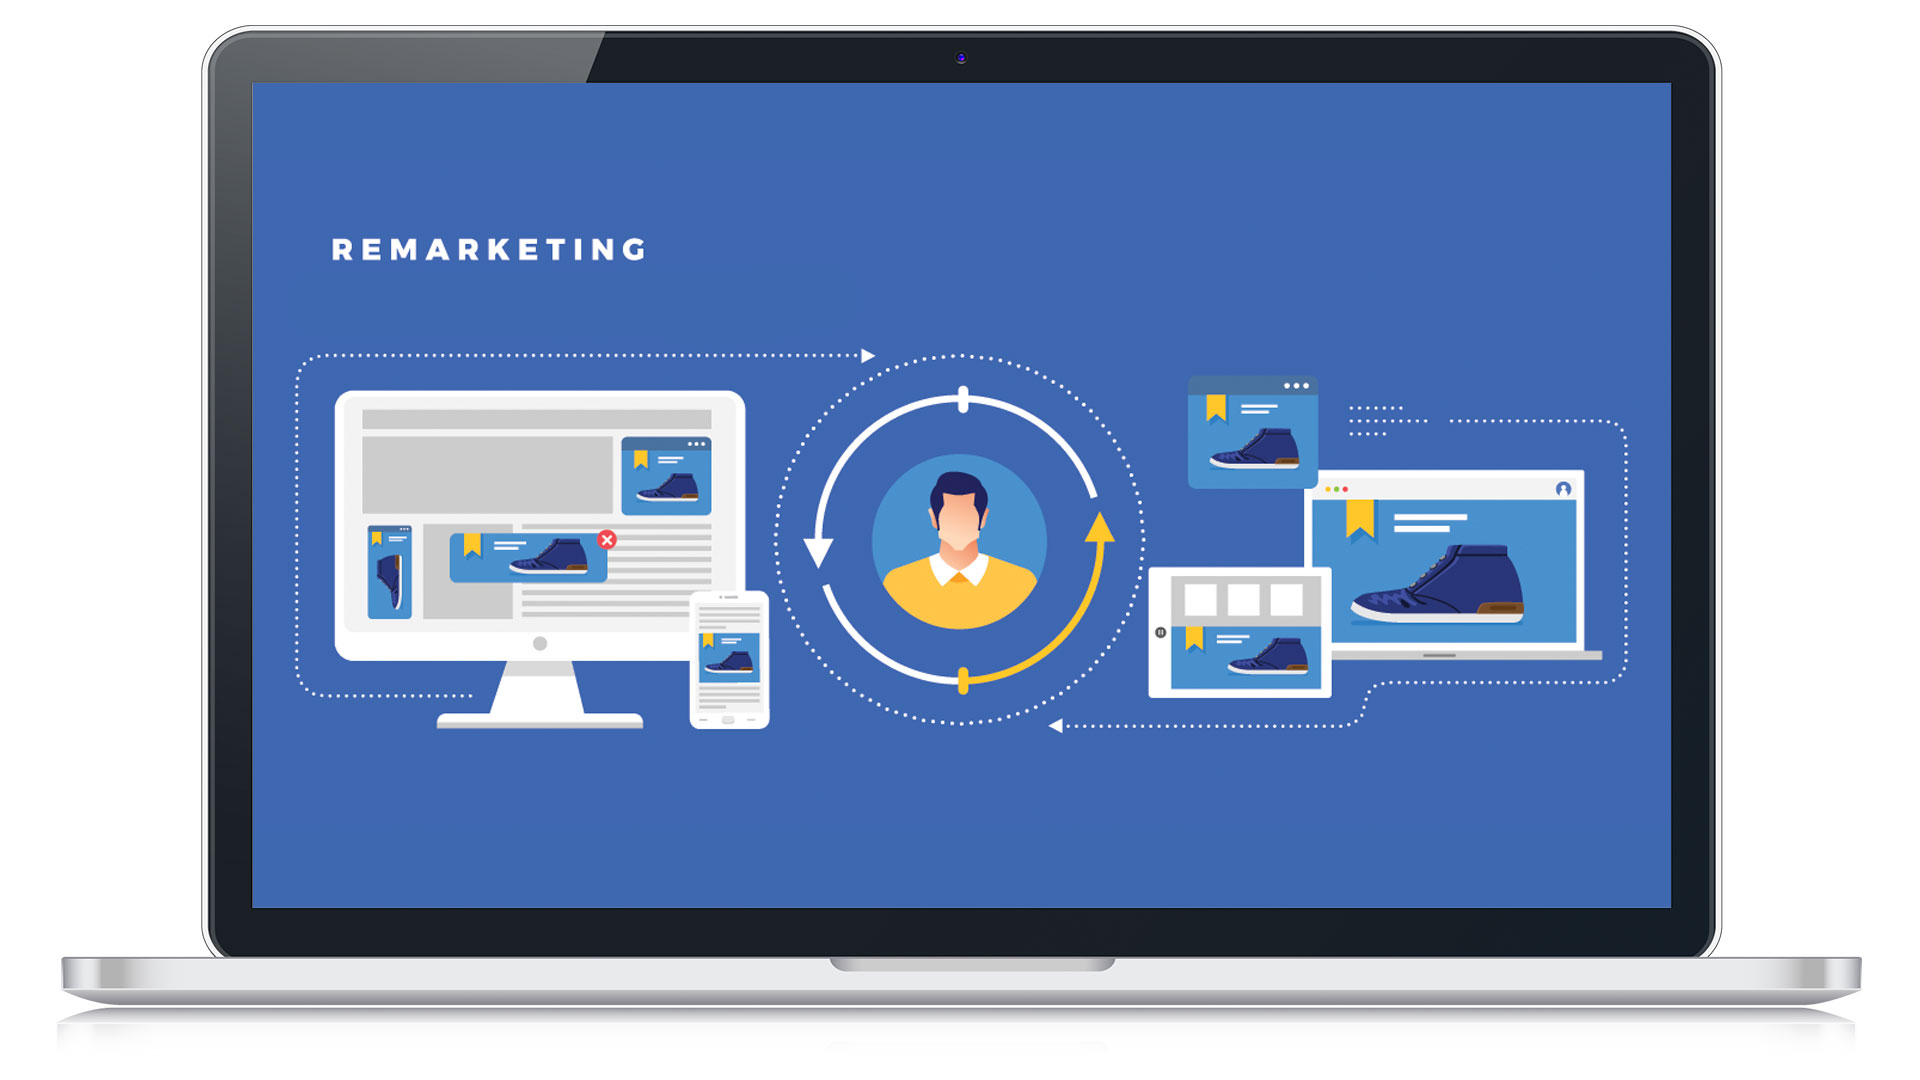 Advanced Remarketing Services for Small Businesses